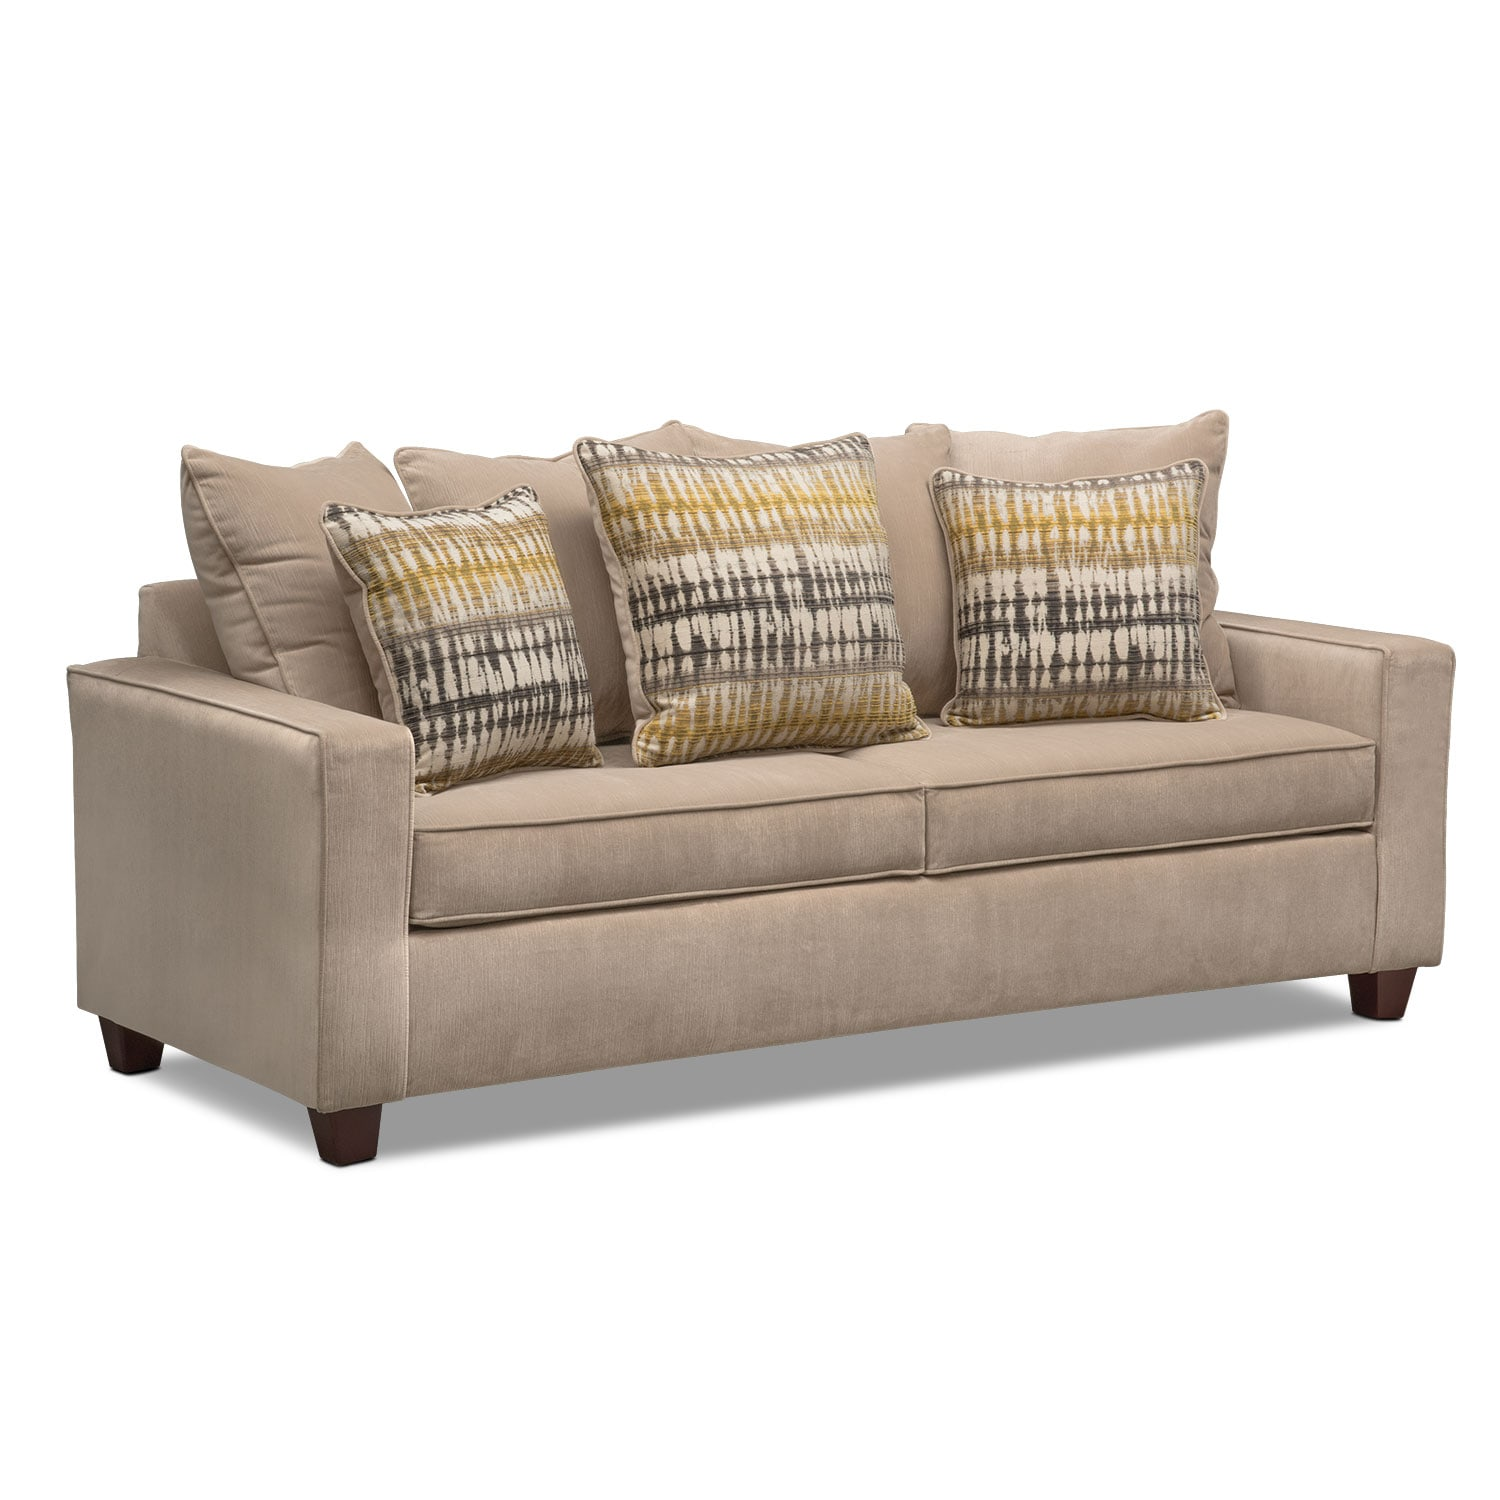 Super Bryden Sofa Creativecarmelina Interior Chair Design Creativecarmelinacom